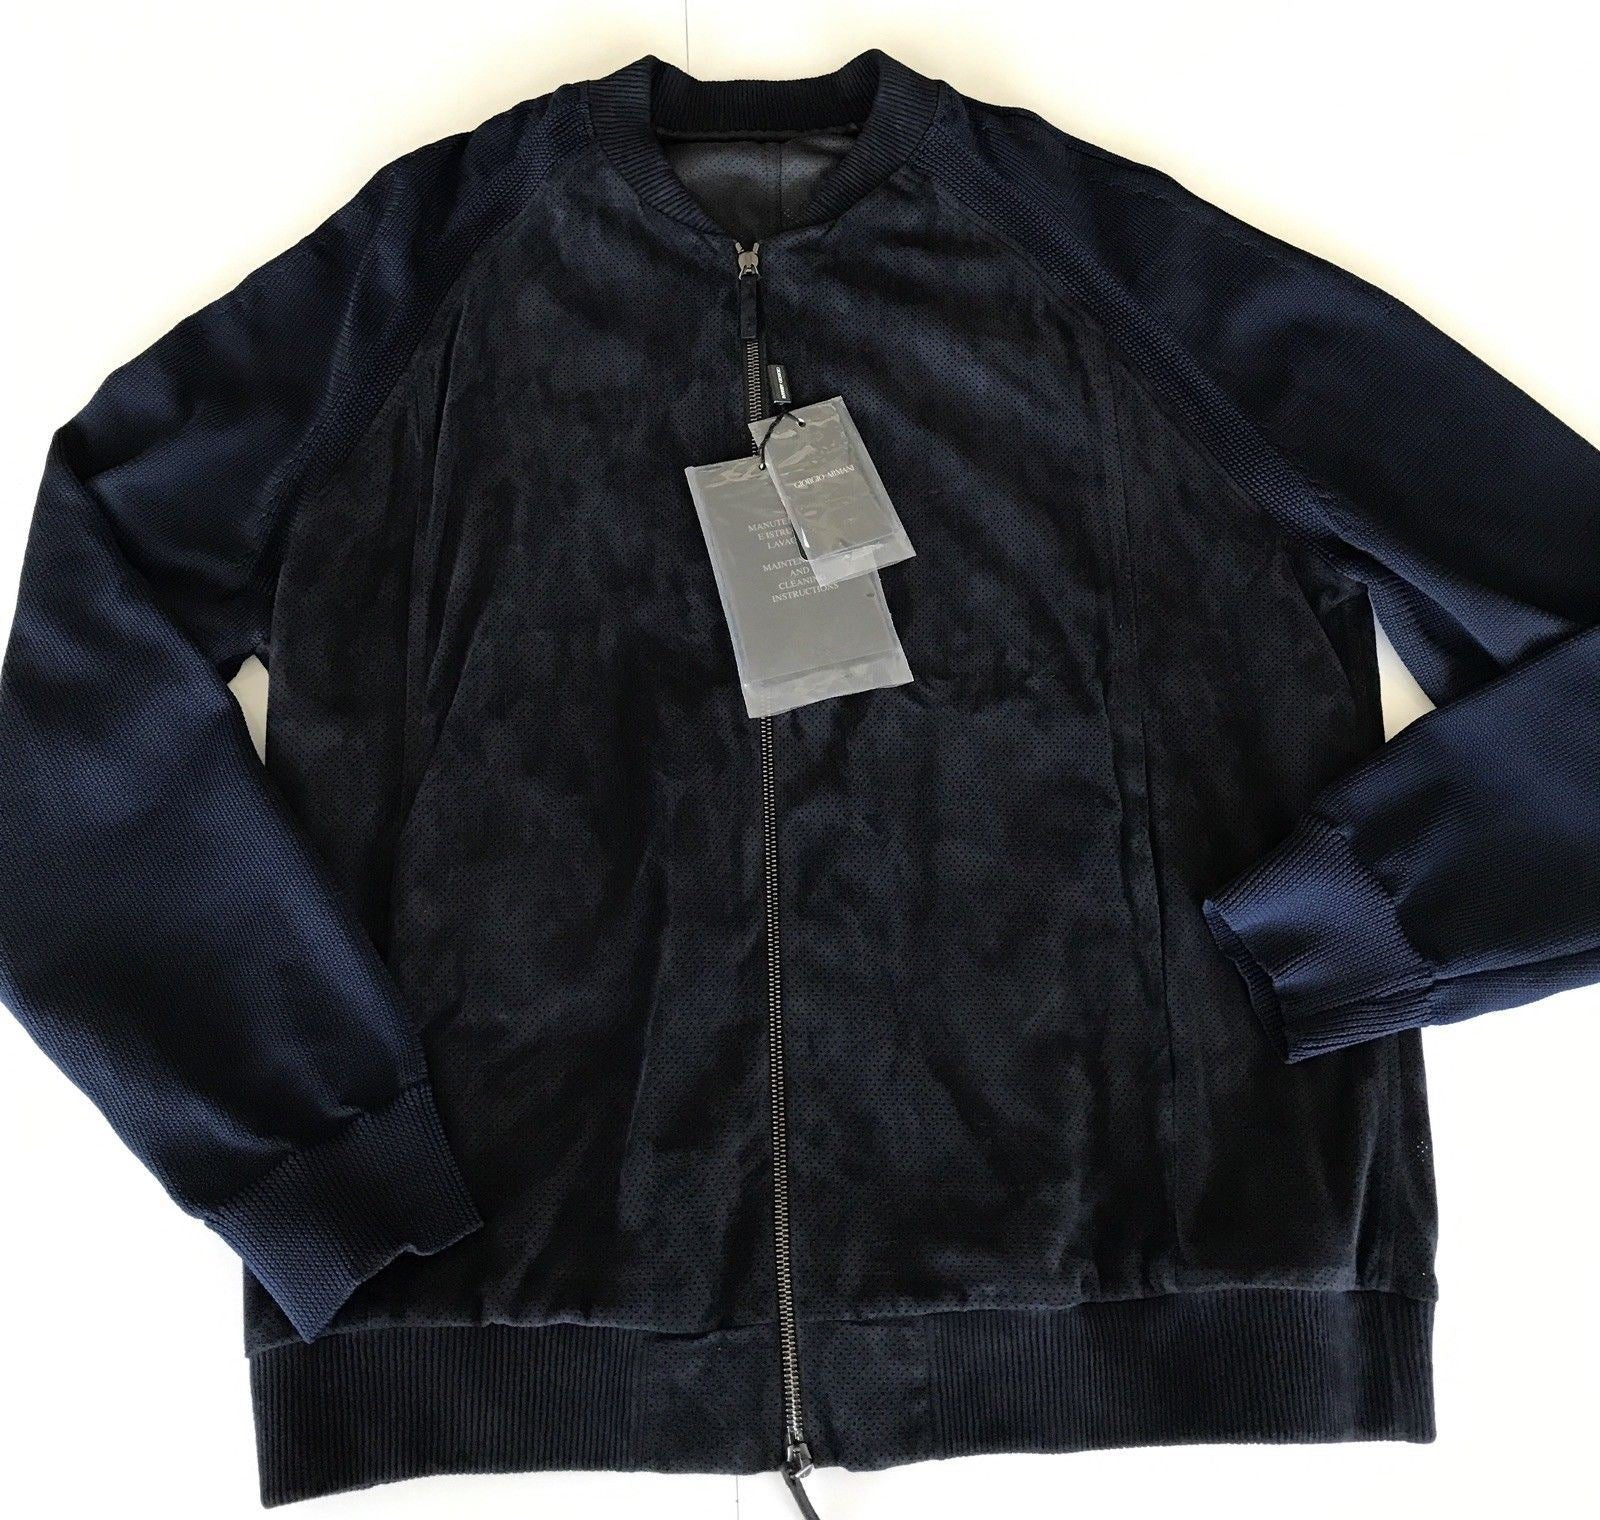 NWT $2595 Giorgio Armani  Men's Blouson Lamb Leather Jacket Blue 56 Euro VSP83